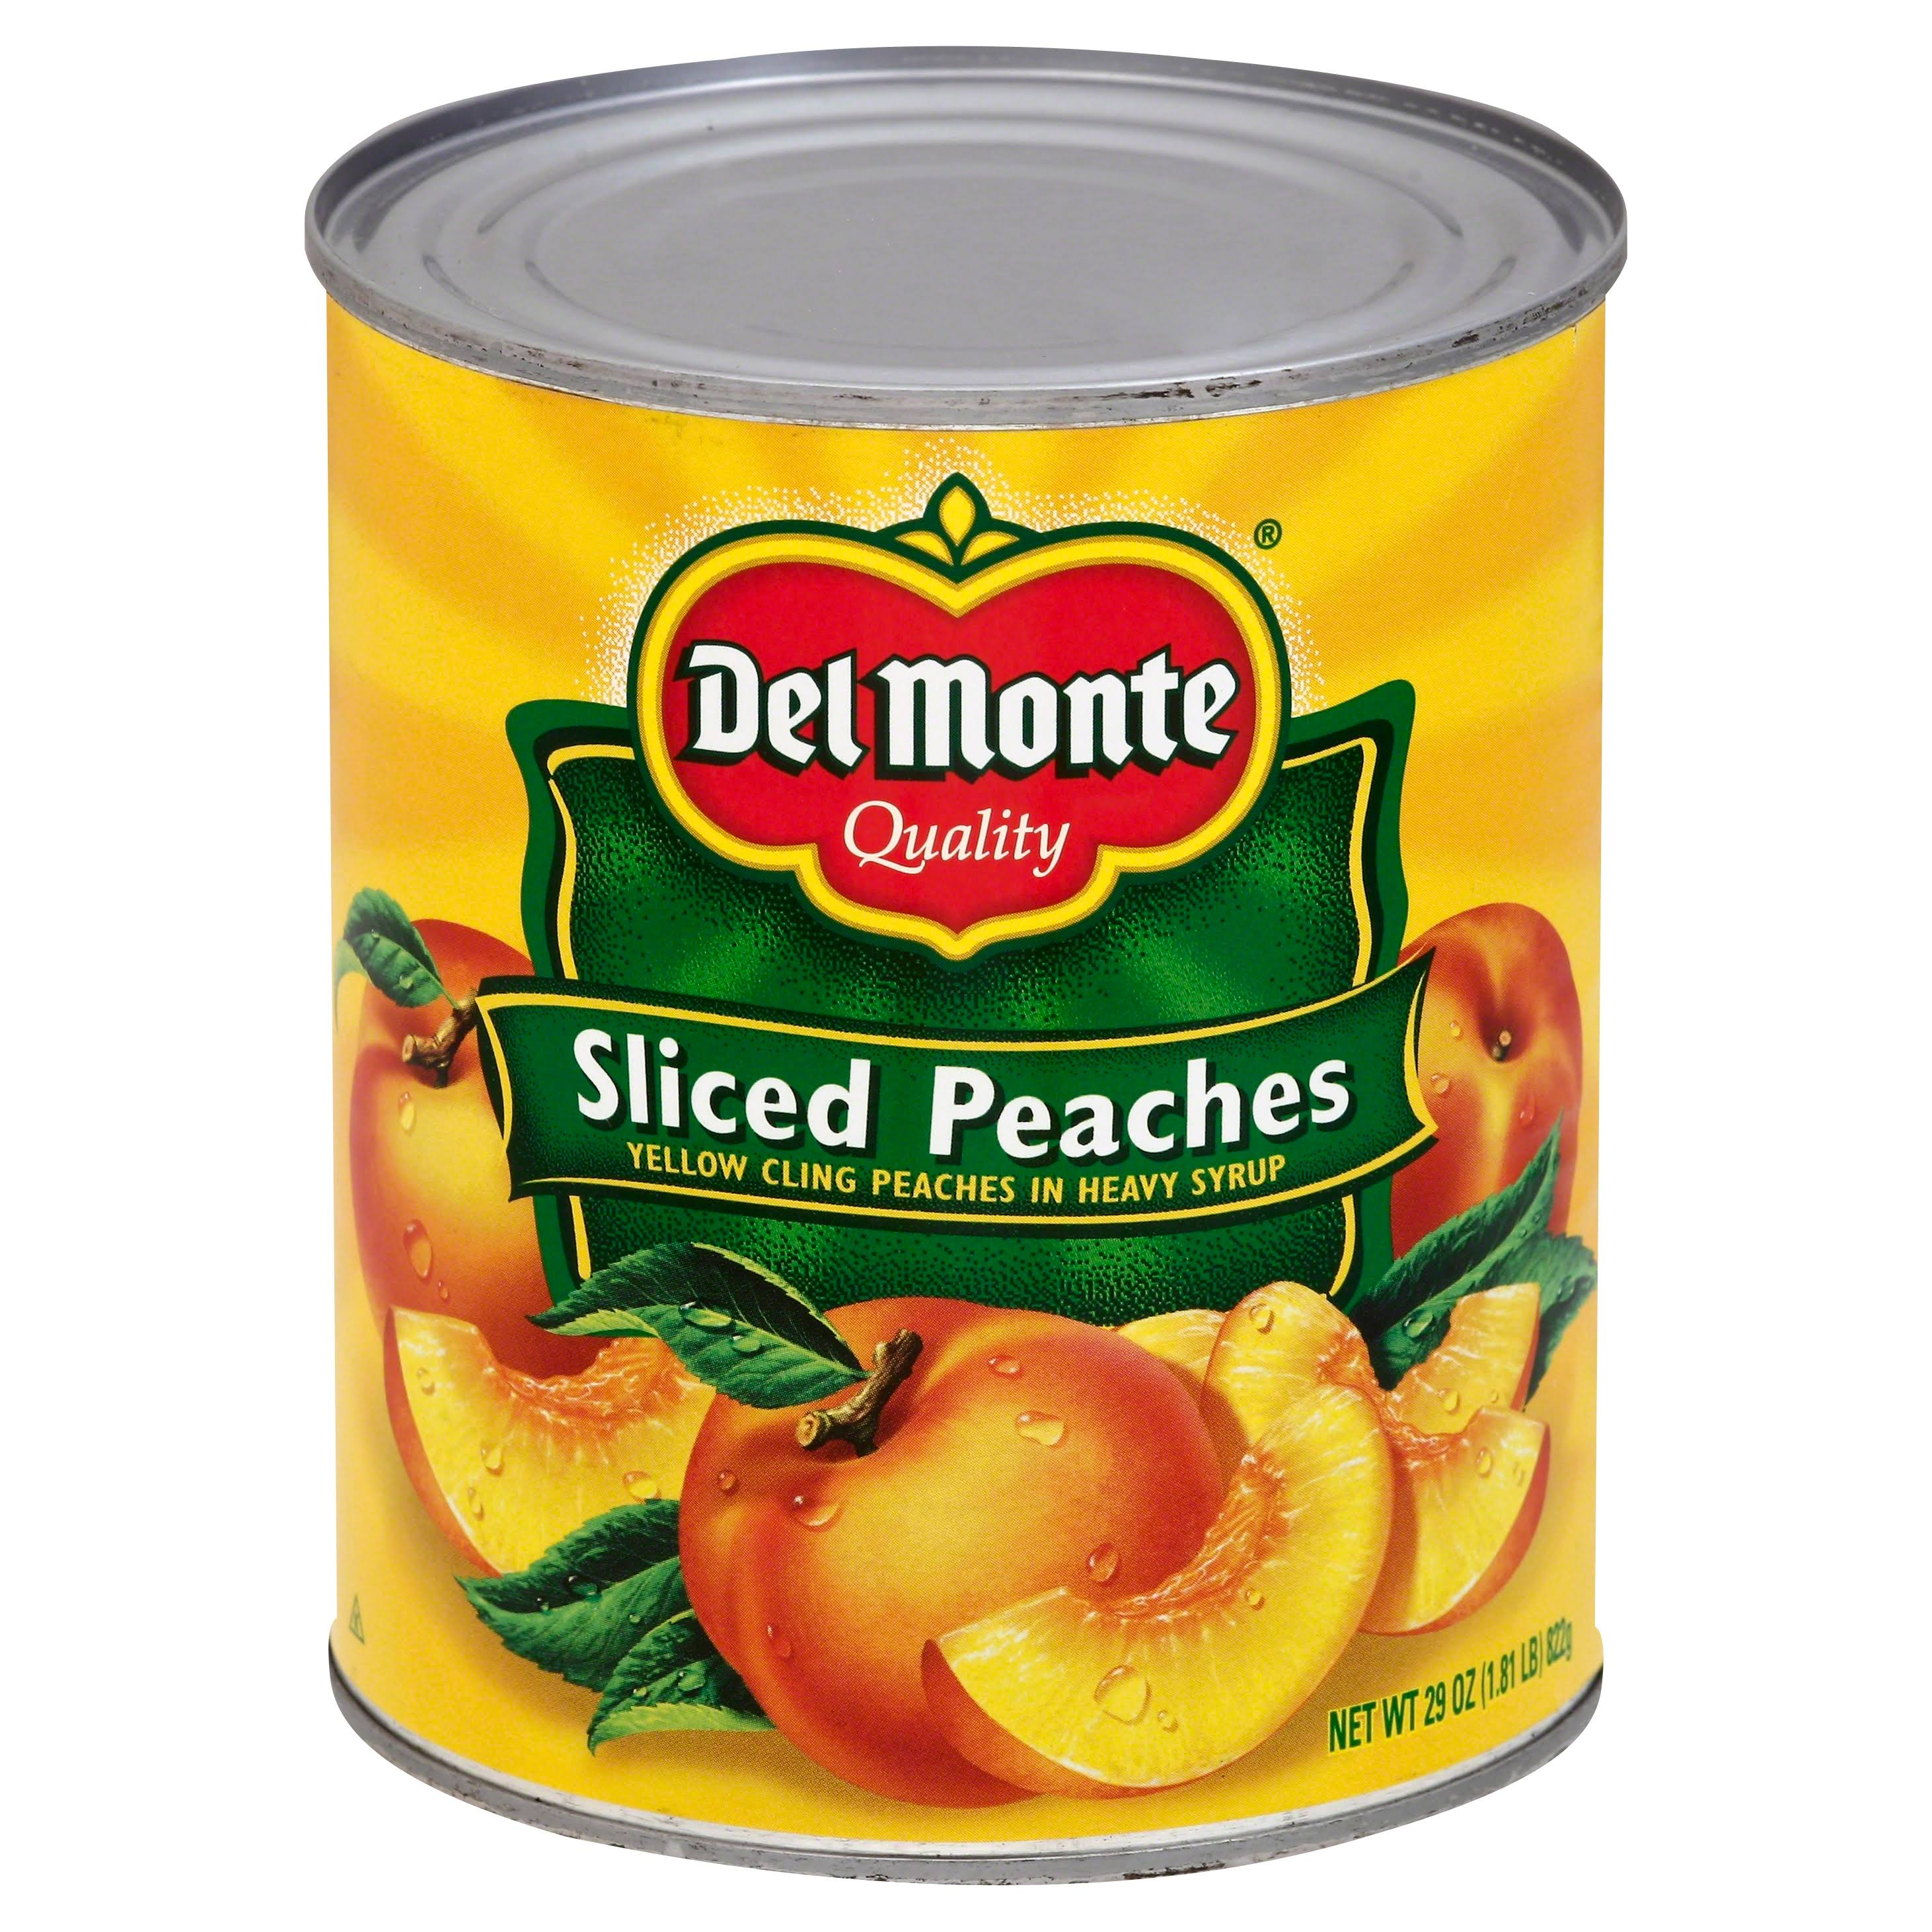 Del Monte Peaches, Sliced, in Heavy Syrup - 29 oz